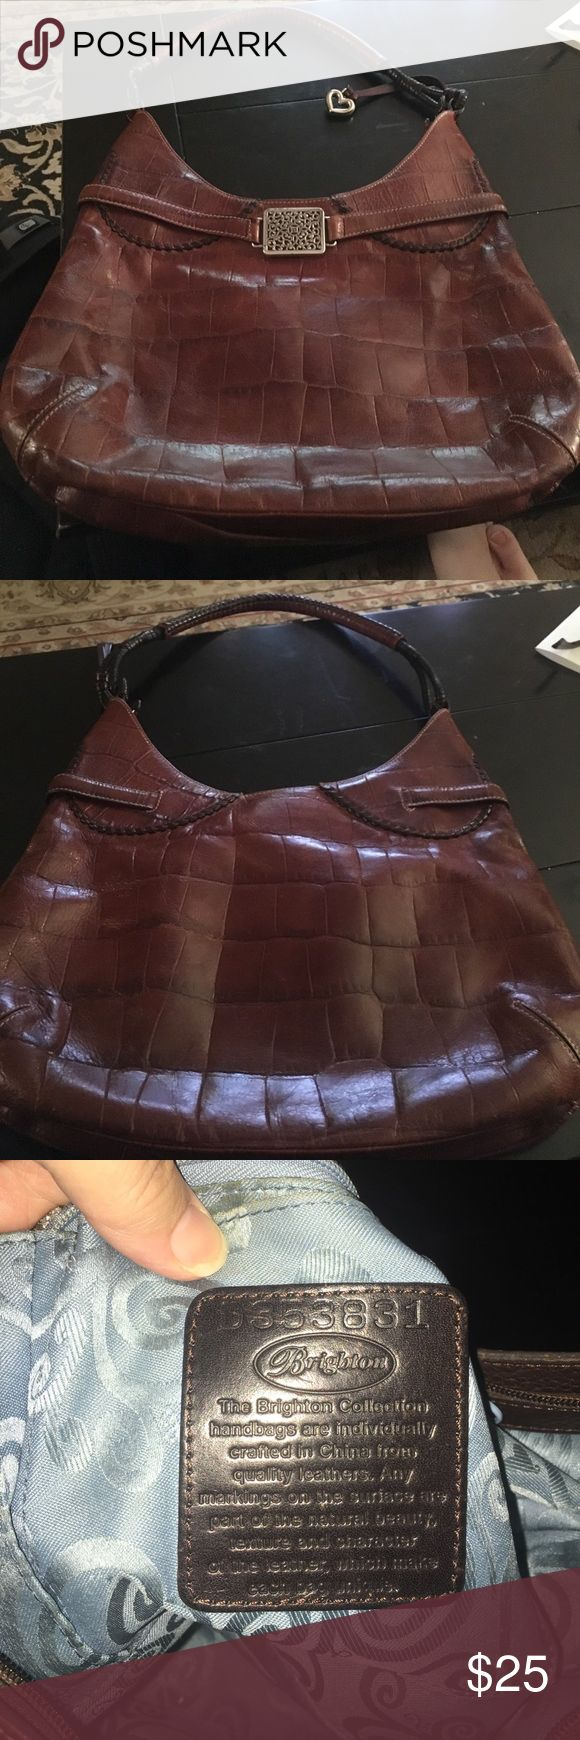 Brighton Purse Authentic Leather Brighton hobo bag. In excellent used condition. Brighton Bags Hobos